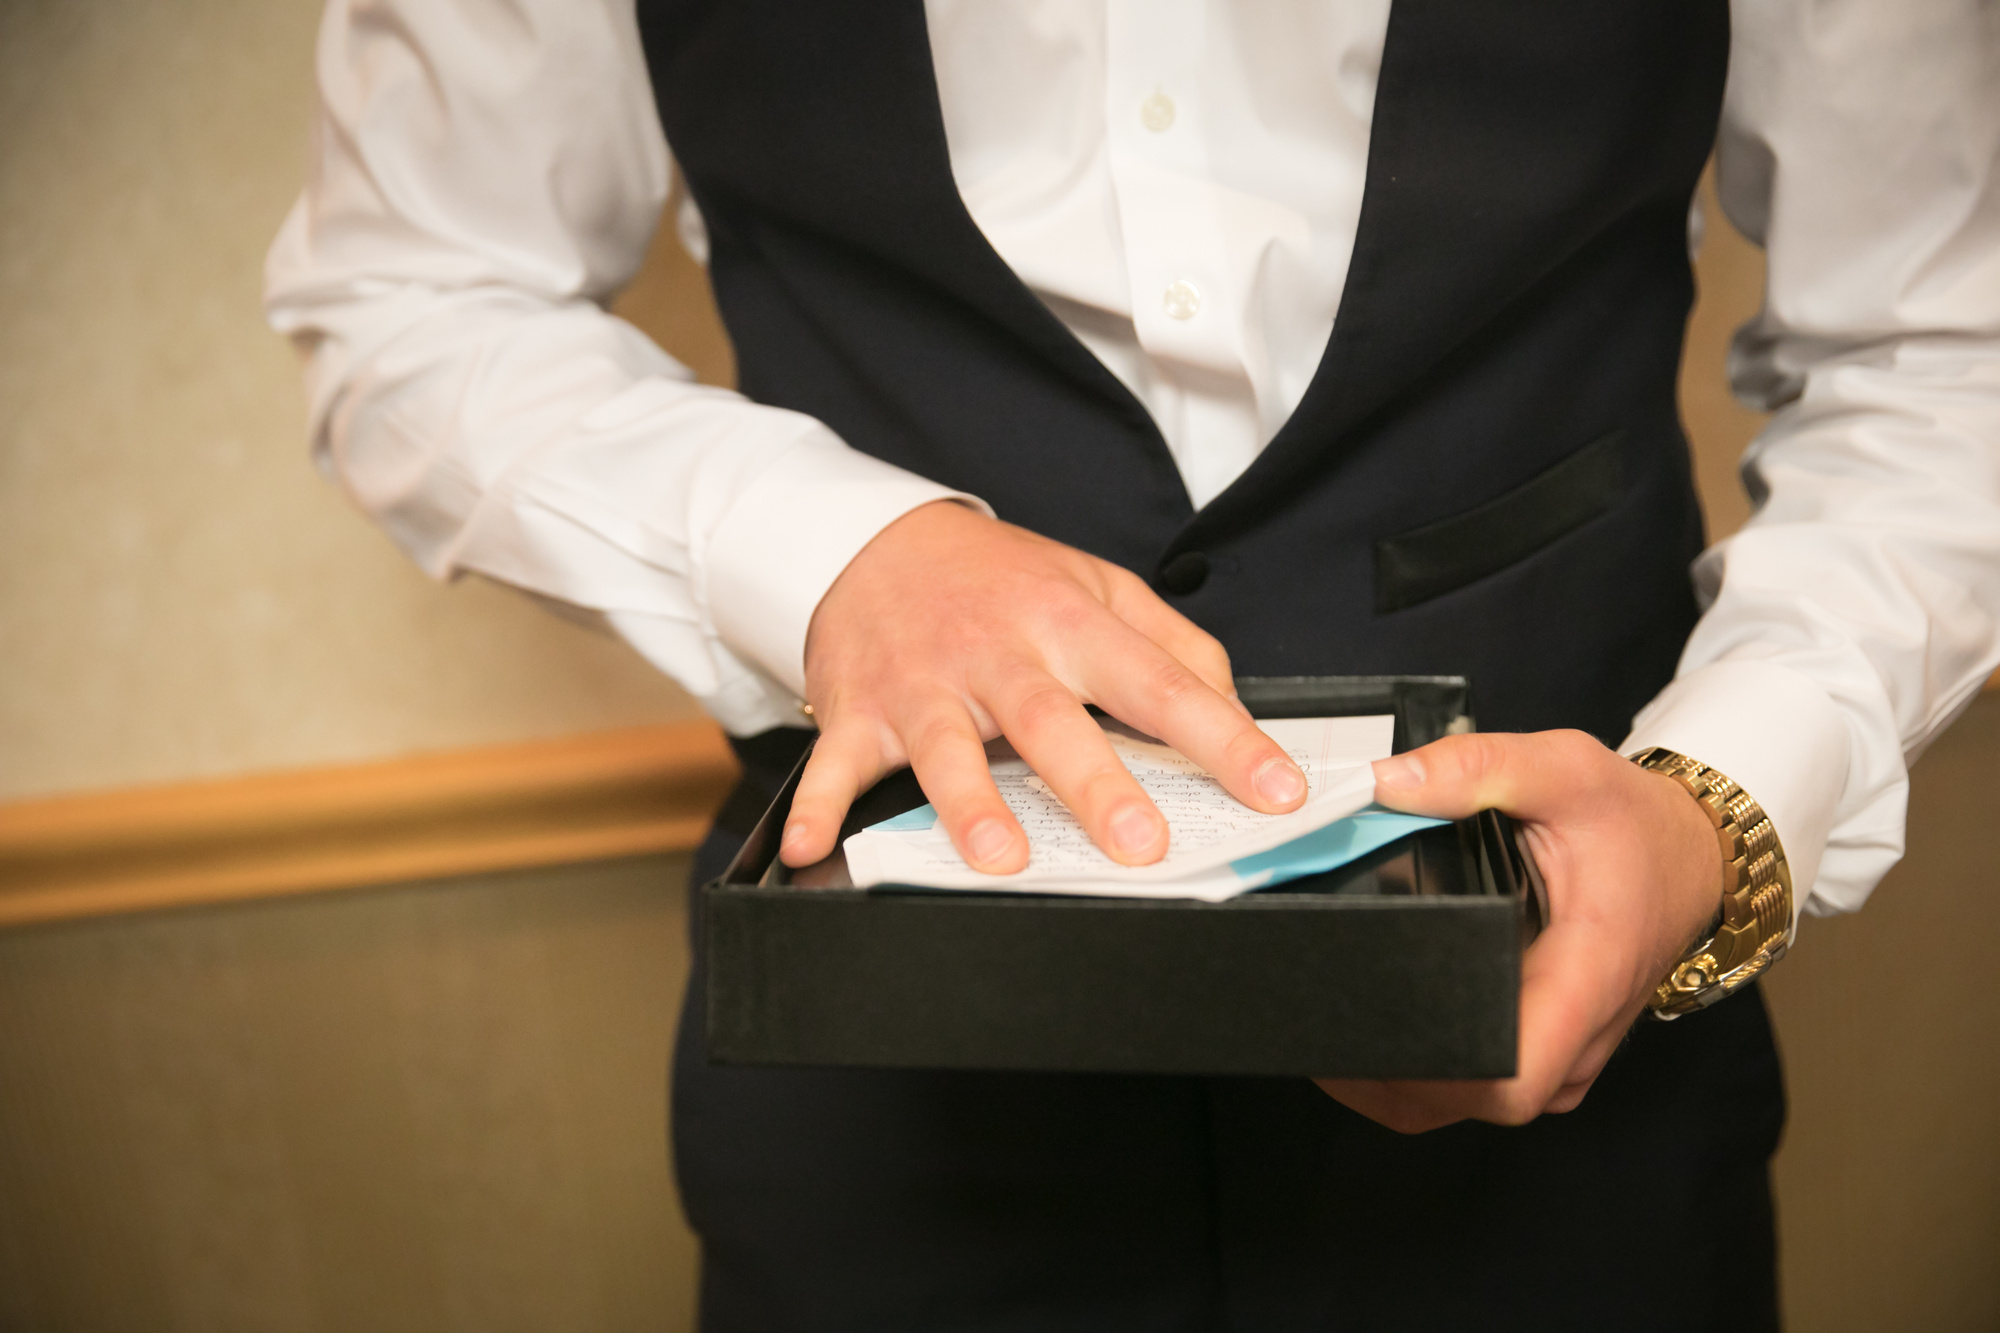 Wedding Gifts Ideas For Groom: Congratulations! Amazing Wedding Gifts For The Groom